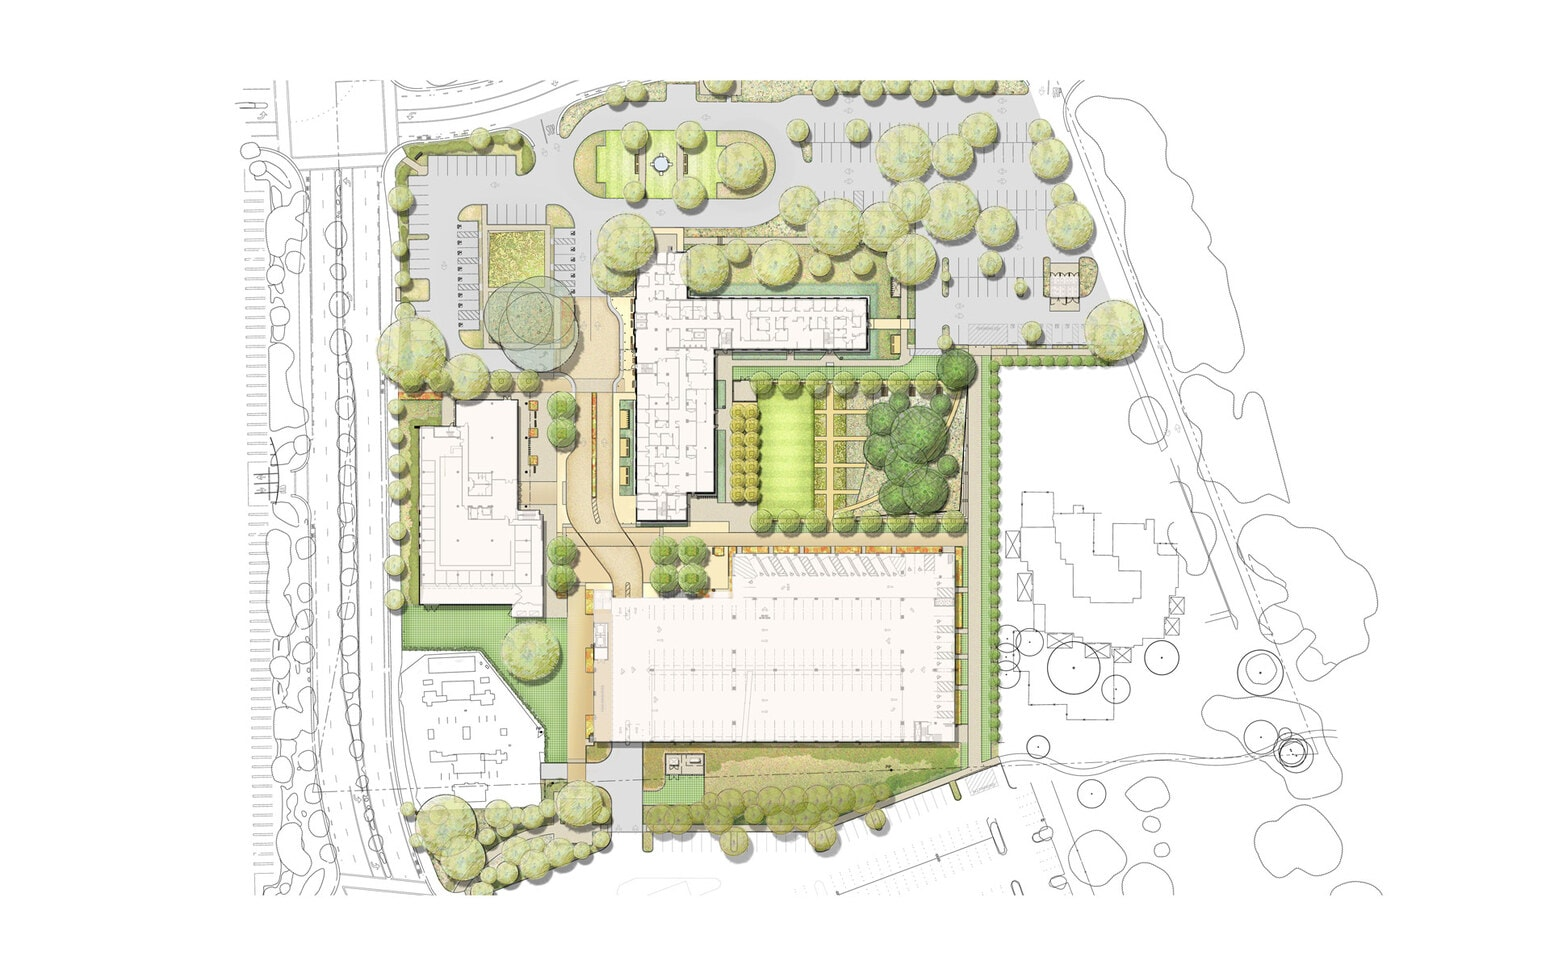 Stanford Hoover Pavilion, Garage and Neuroscience Center Site Plan